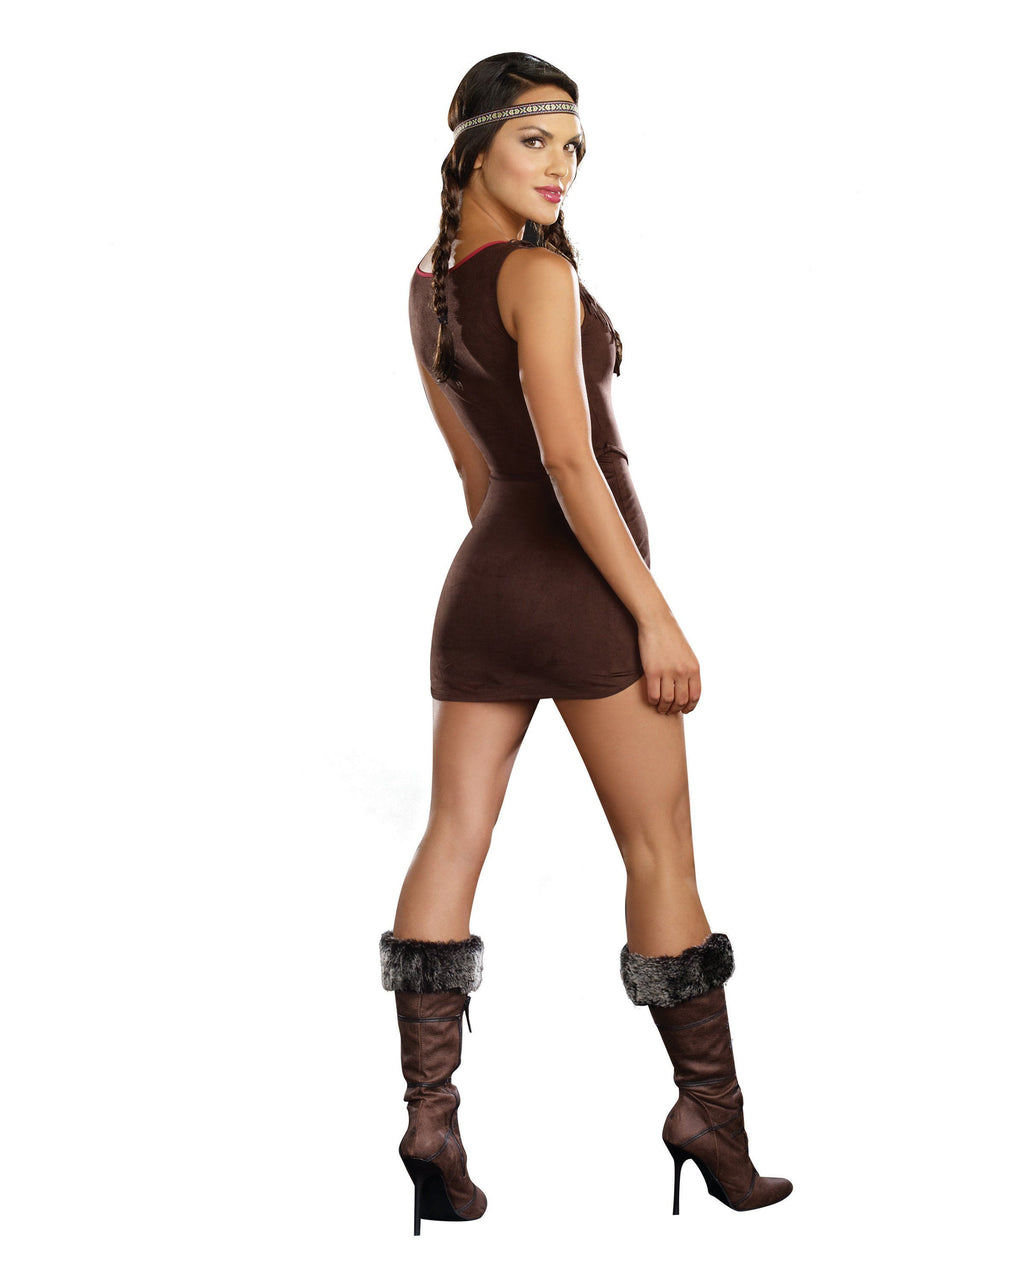 Native Beauty Women's Costume Dreamgirl Costume